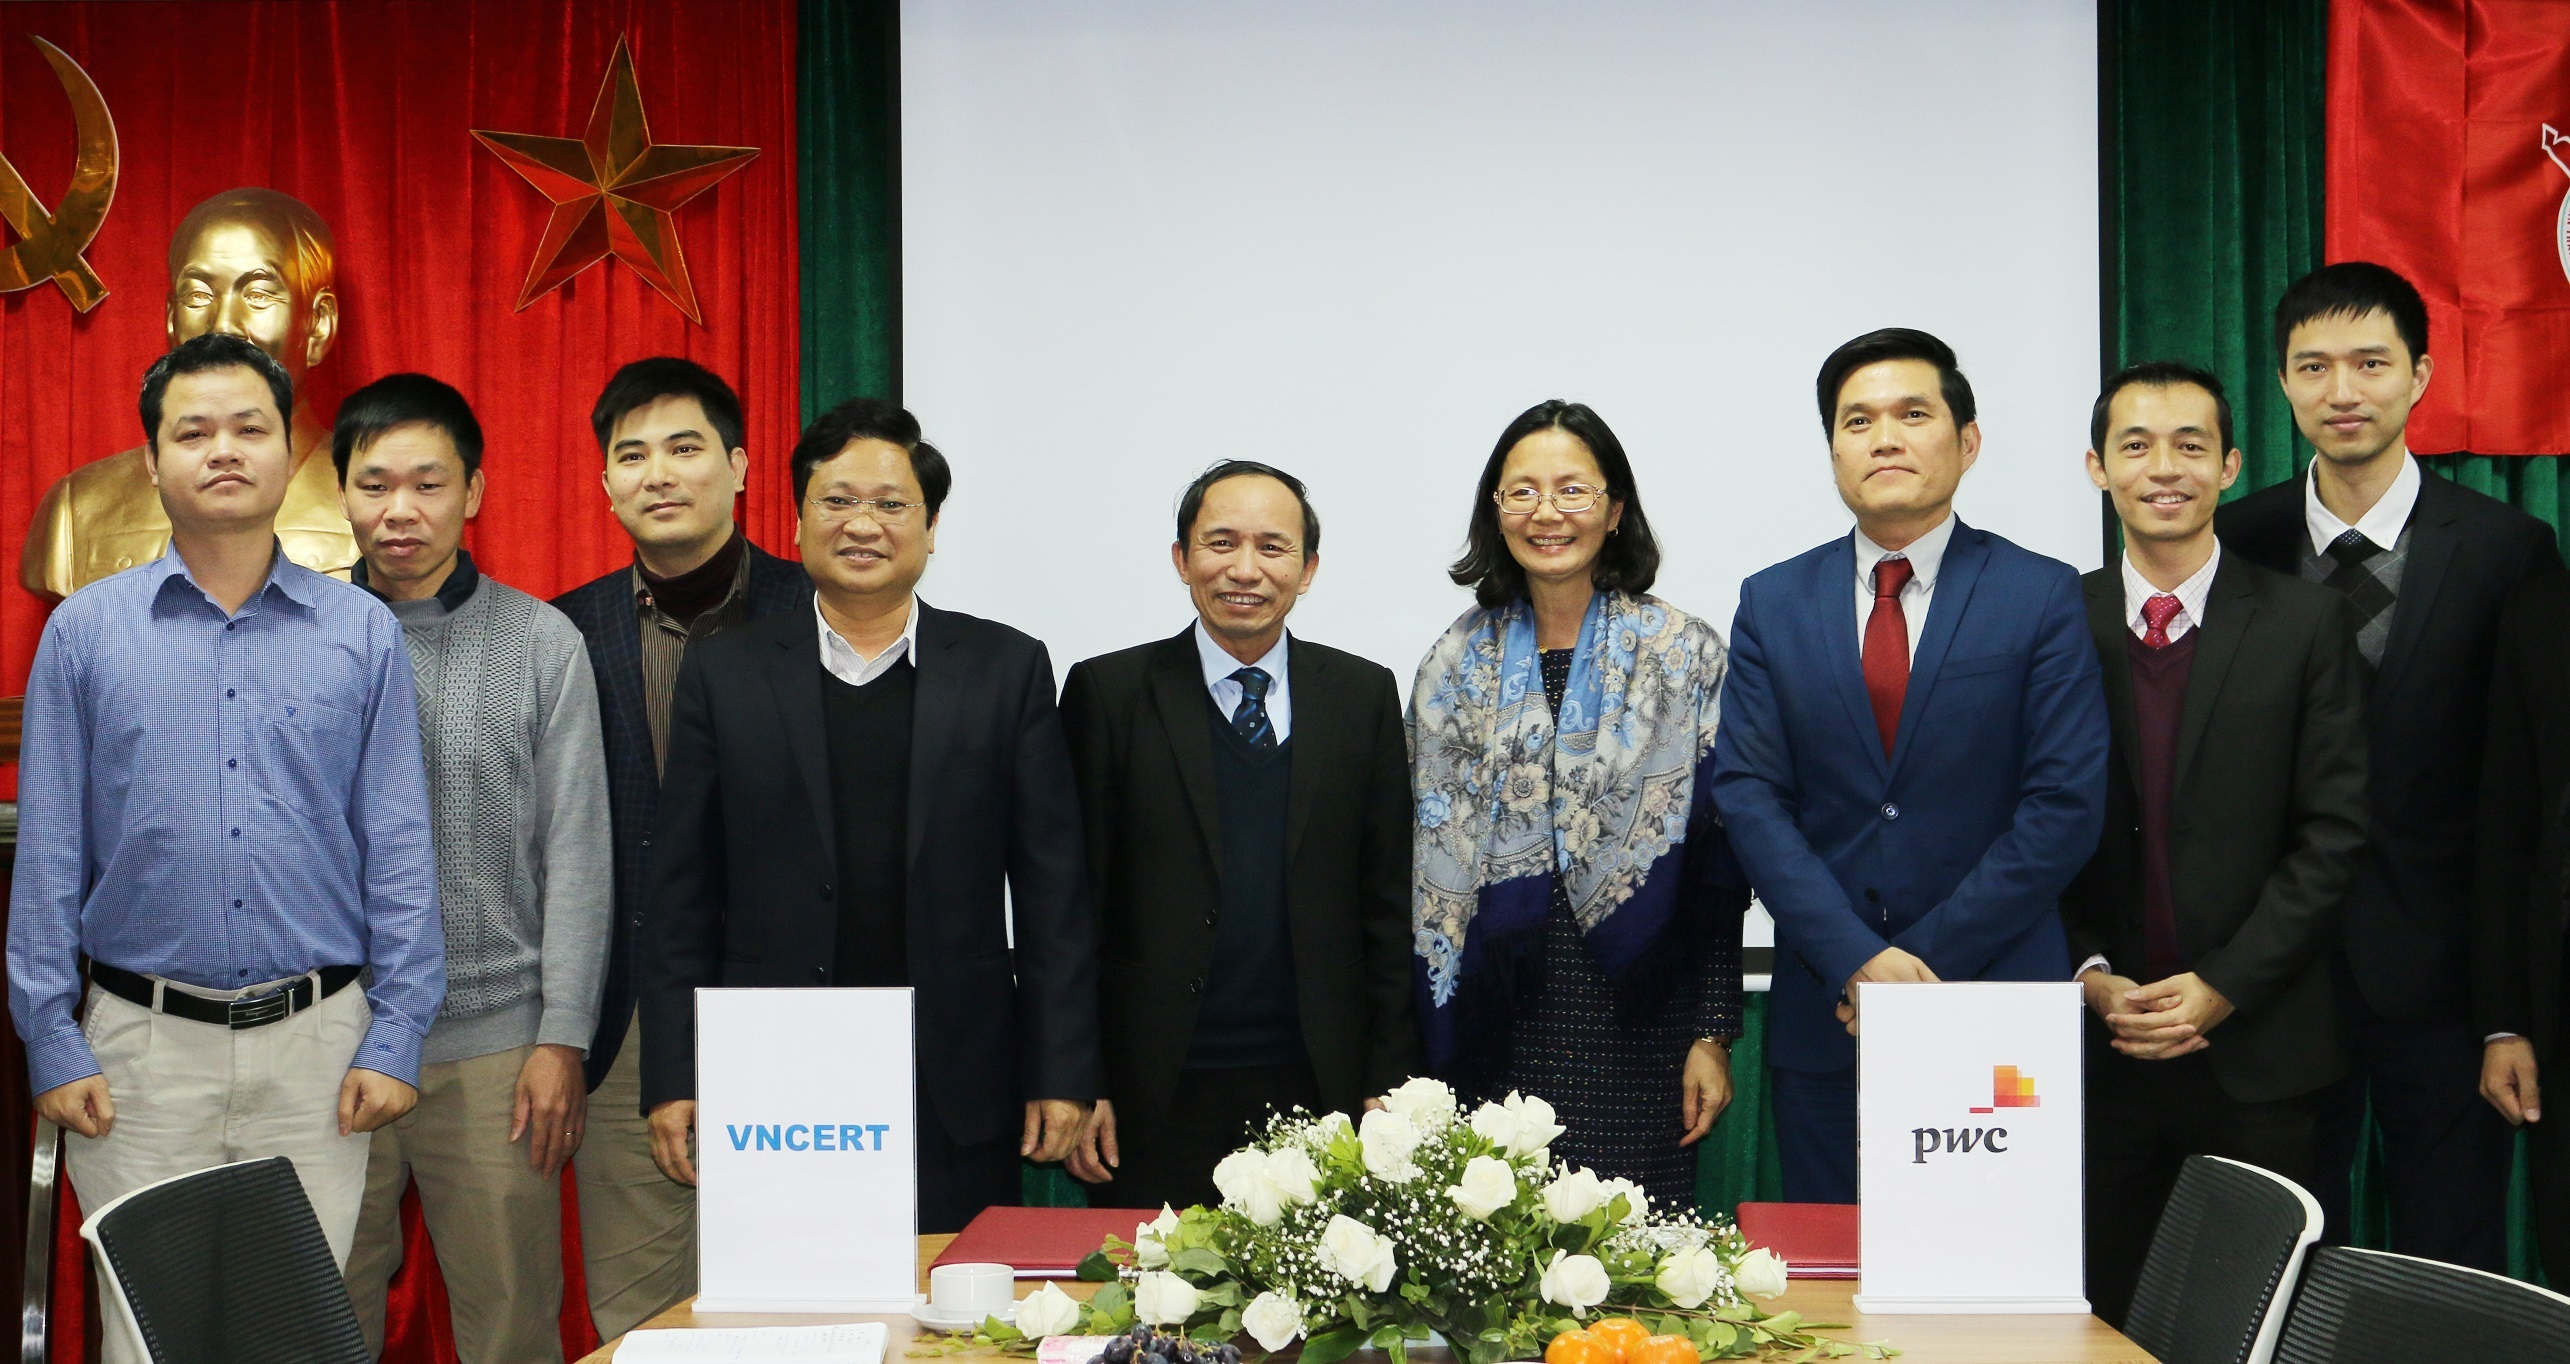 pwc vietnam and vncert form strategic partnership for cyber security incident response